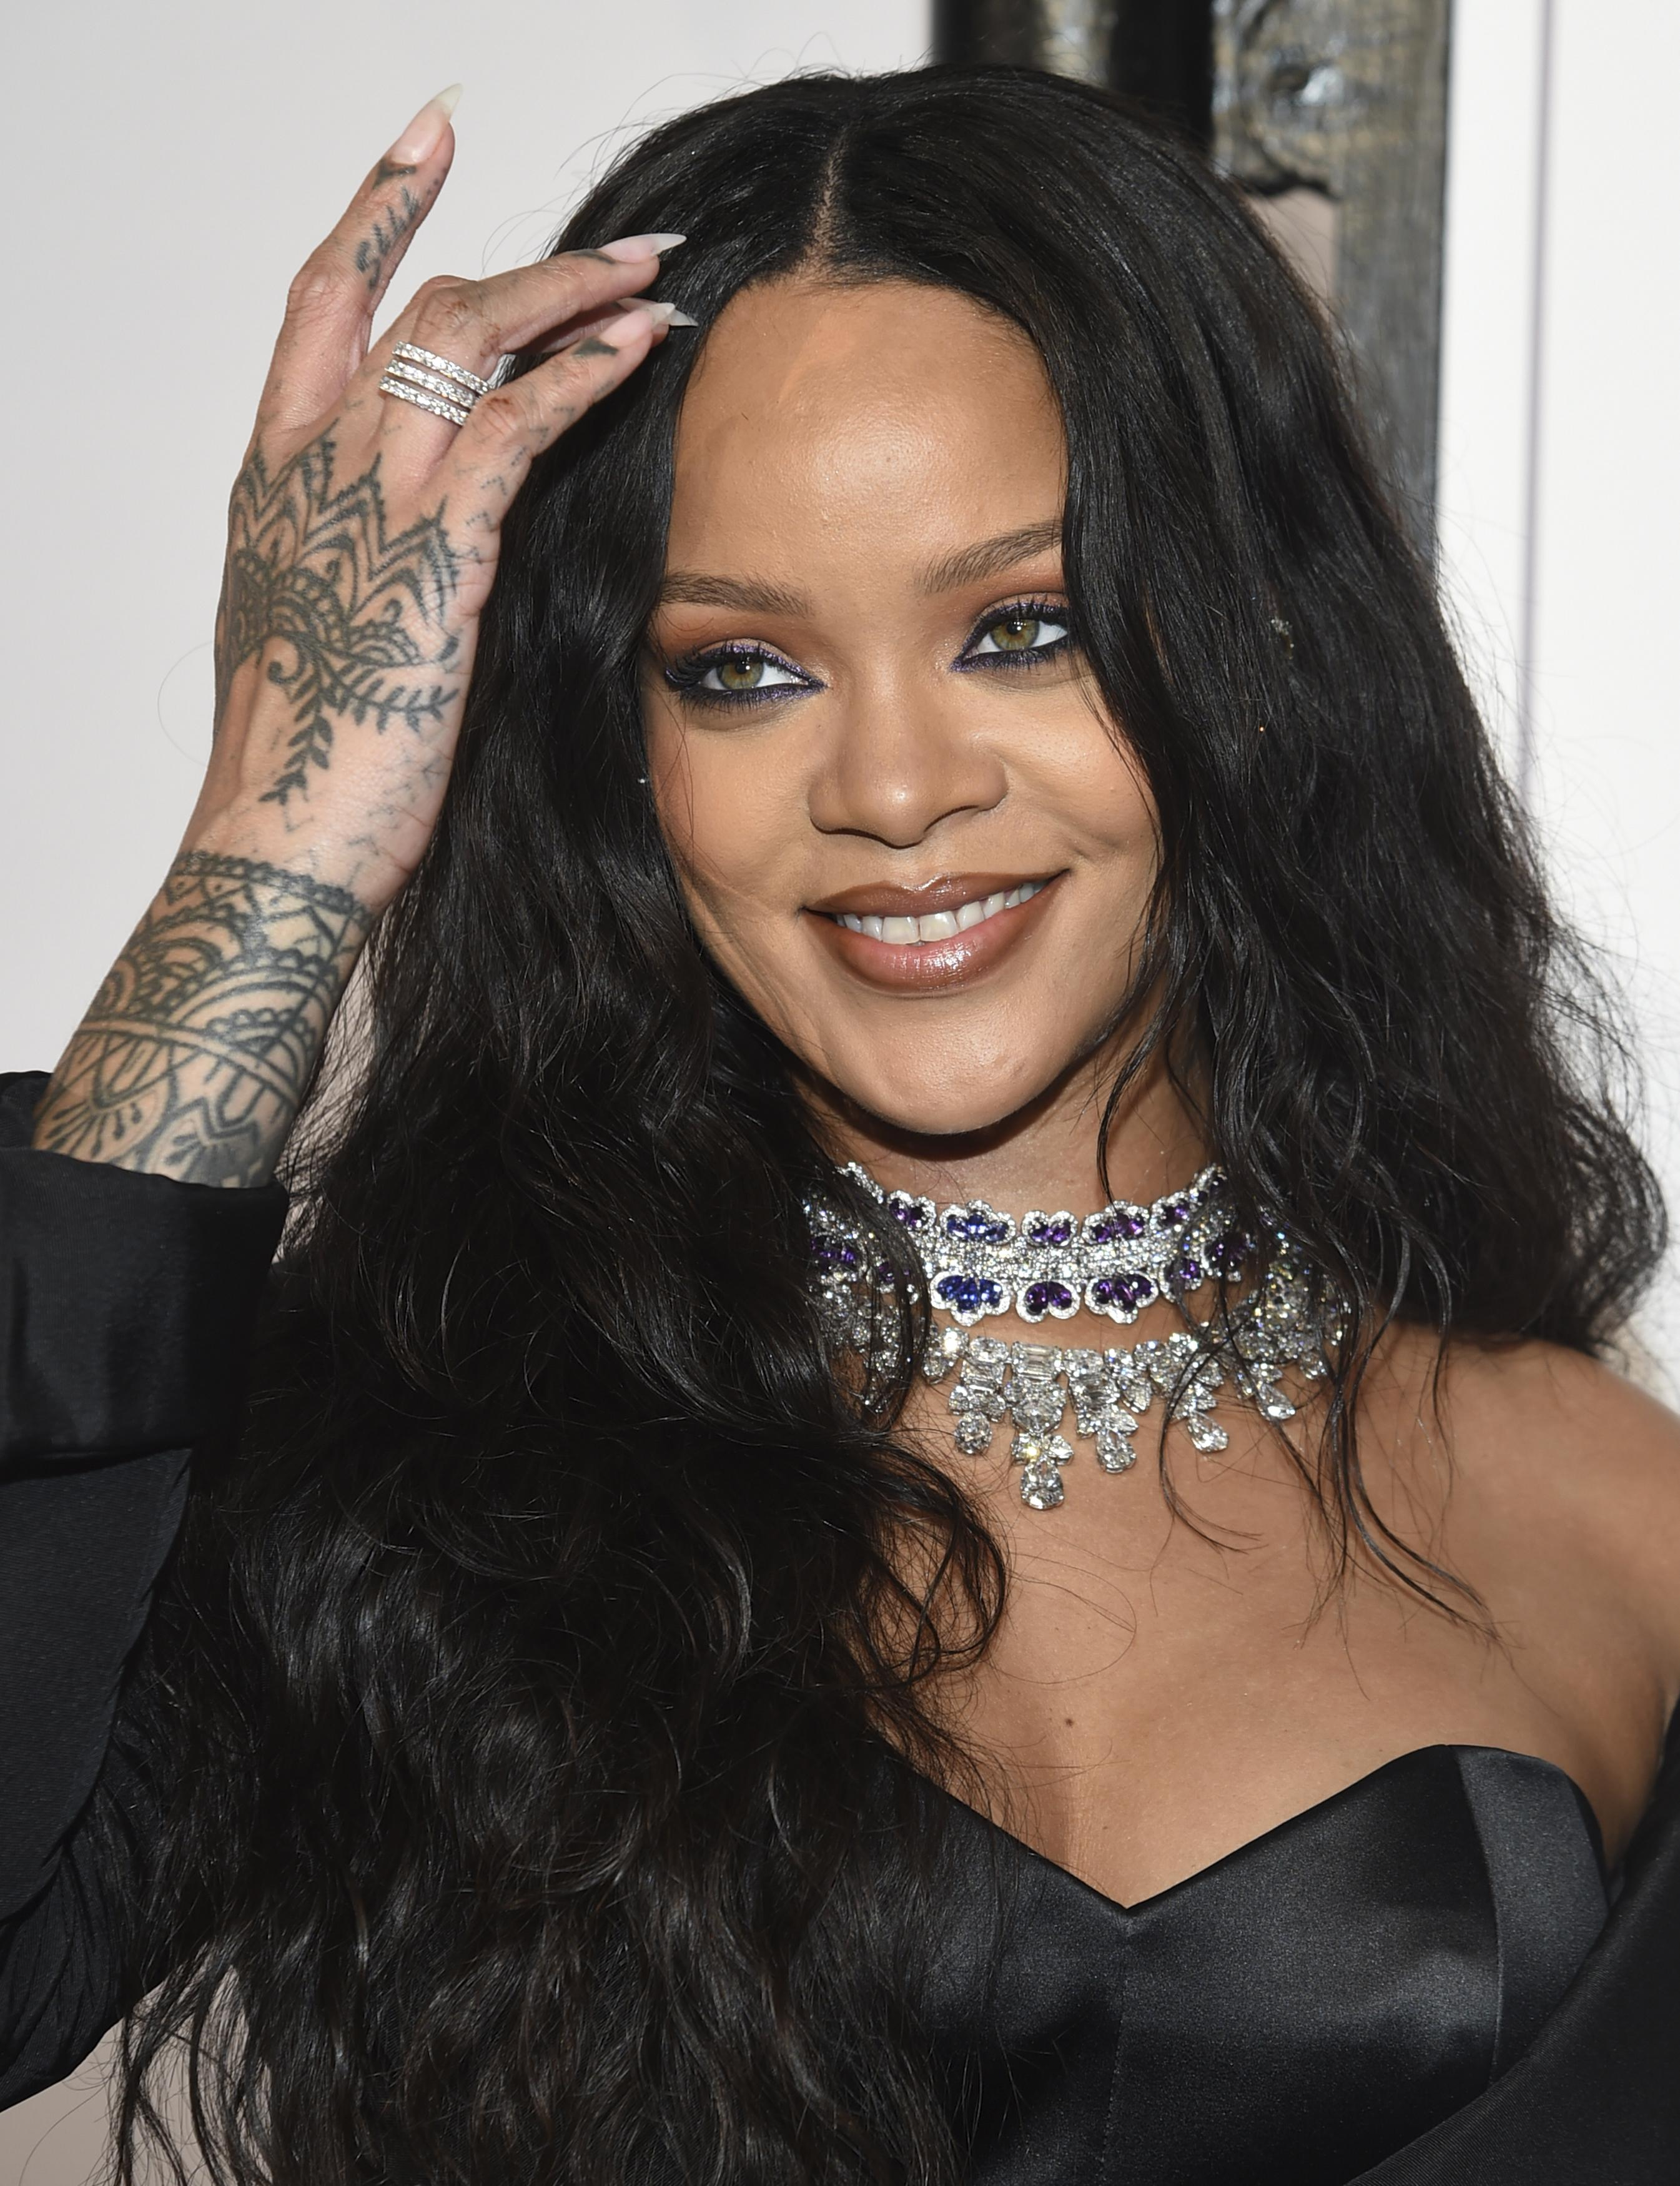 Rihanna, Dave Chappelle team up to raise money for charity ... Rihanna